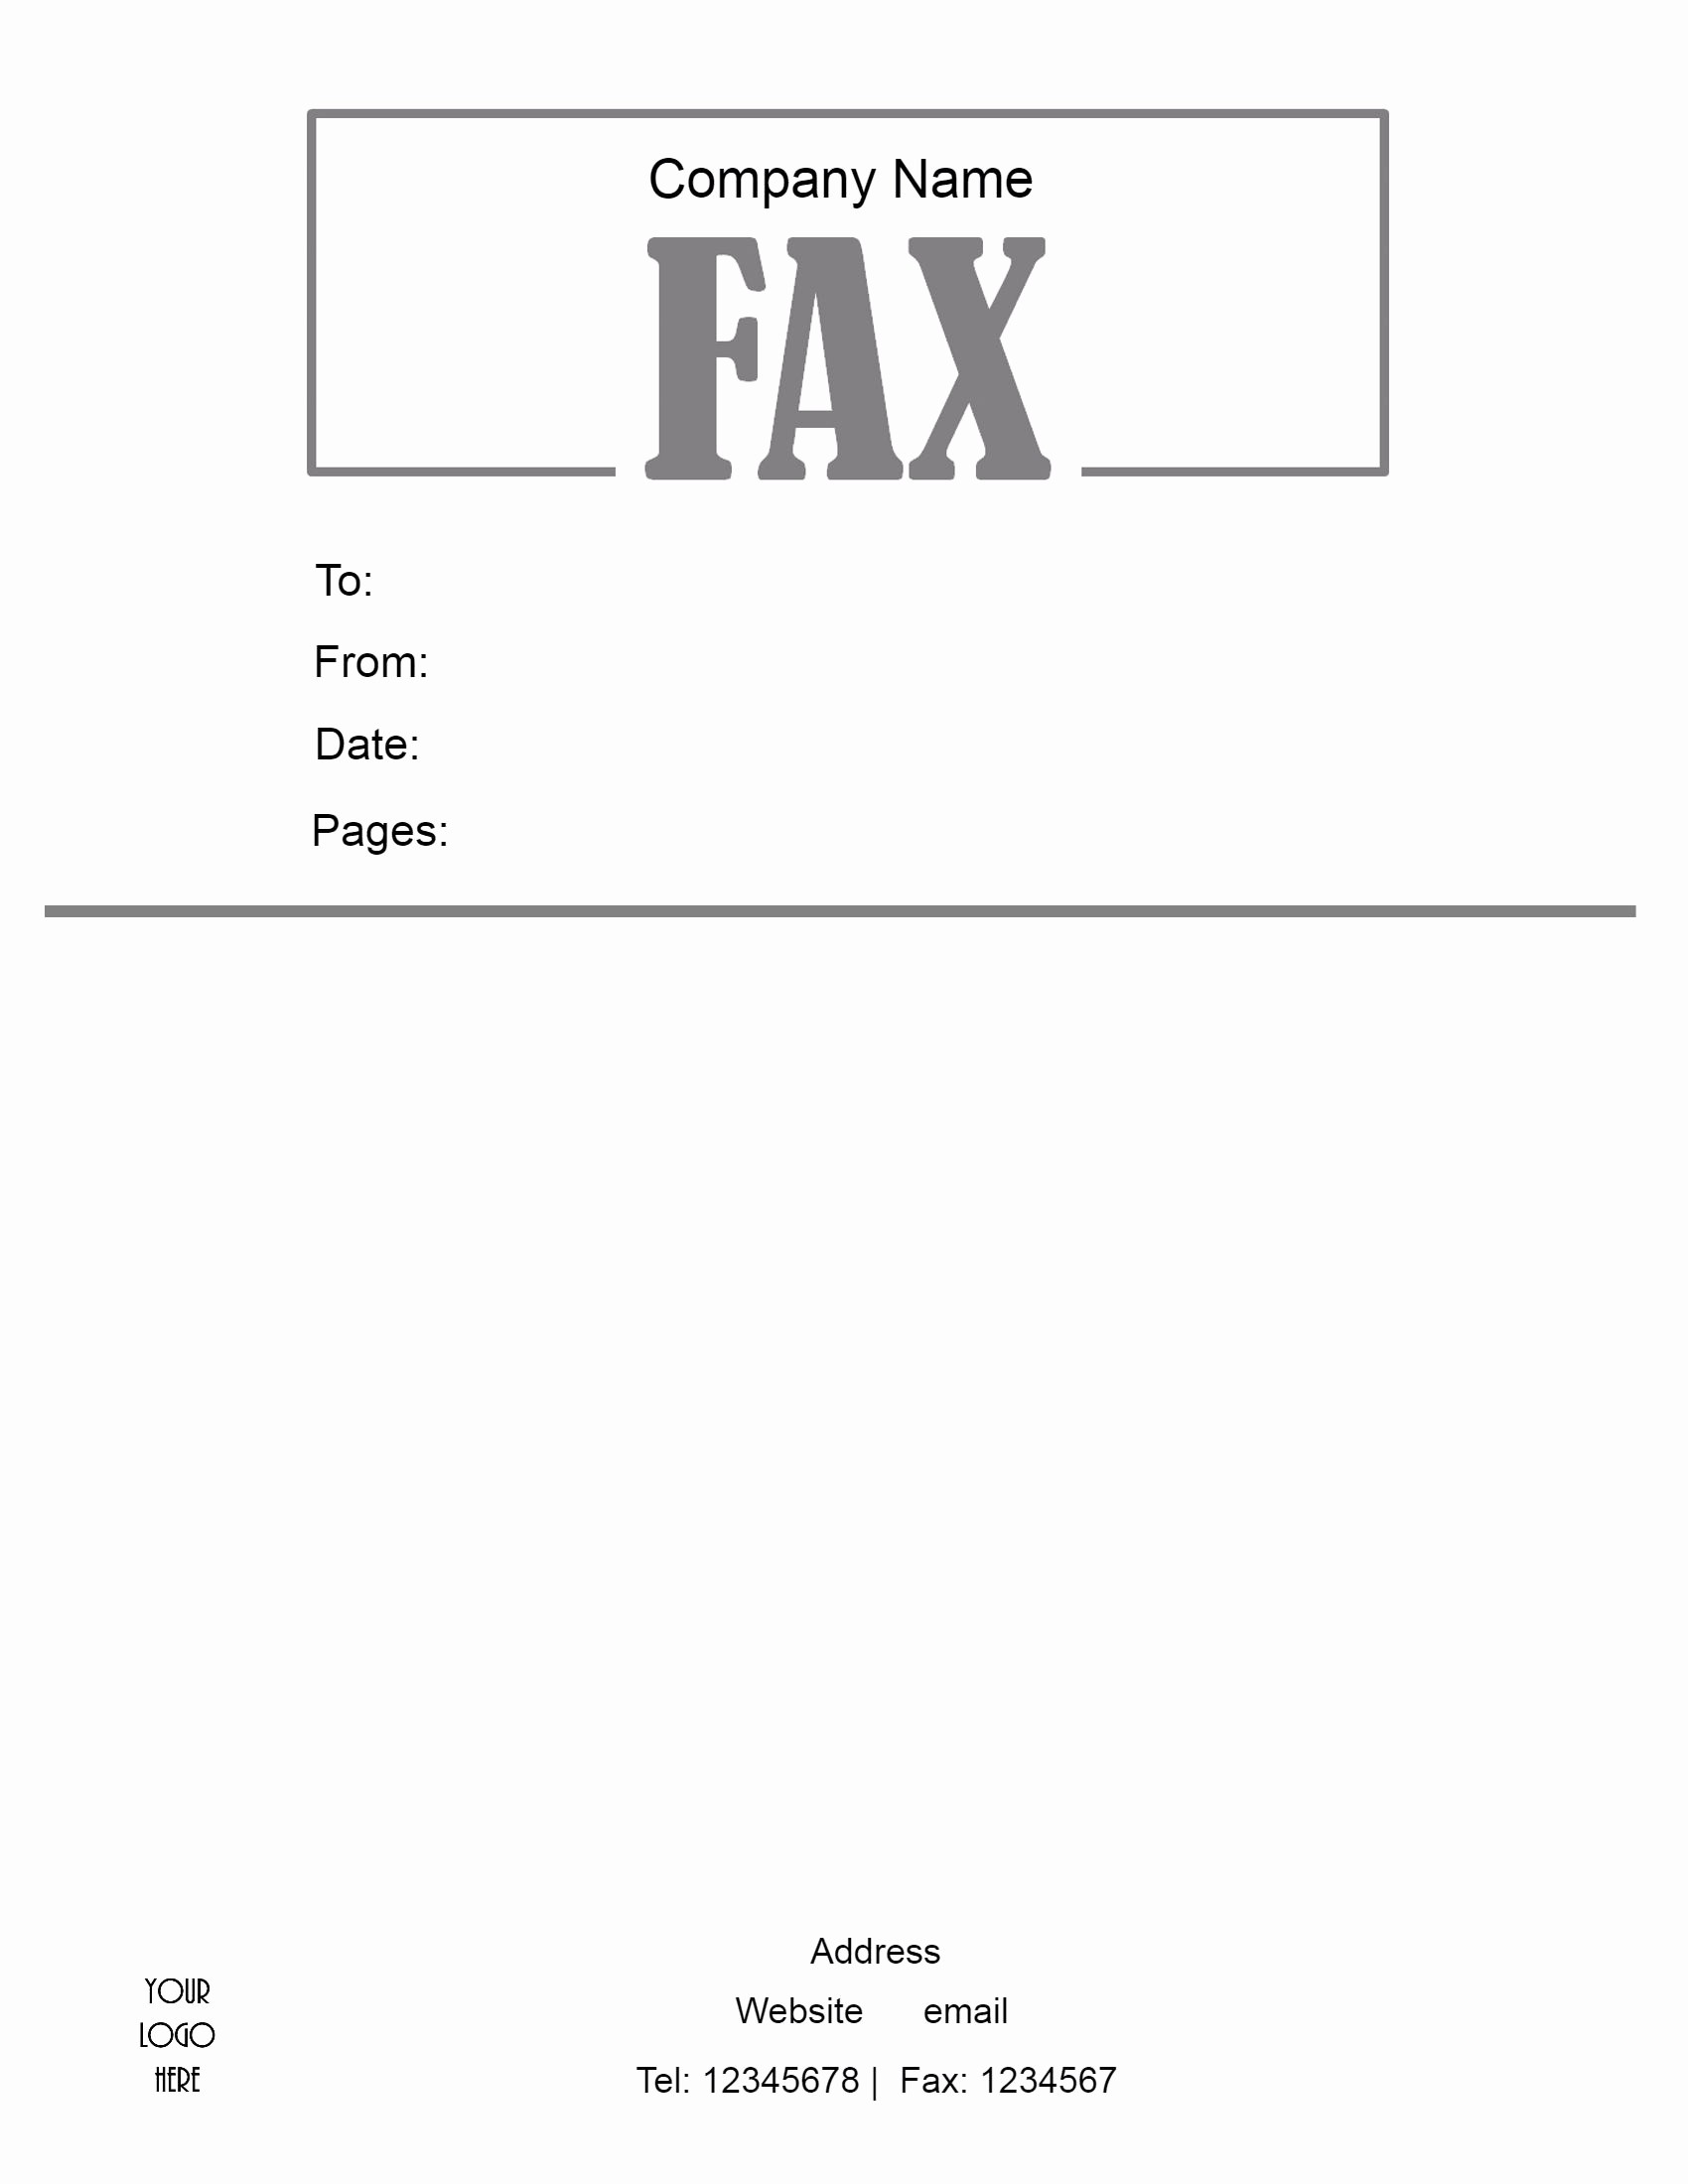 Free Fax Cover Sheet Templates Fresh Free Fax Cover Sheet Template